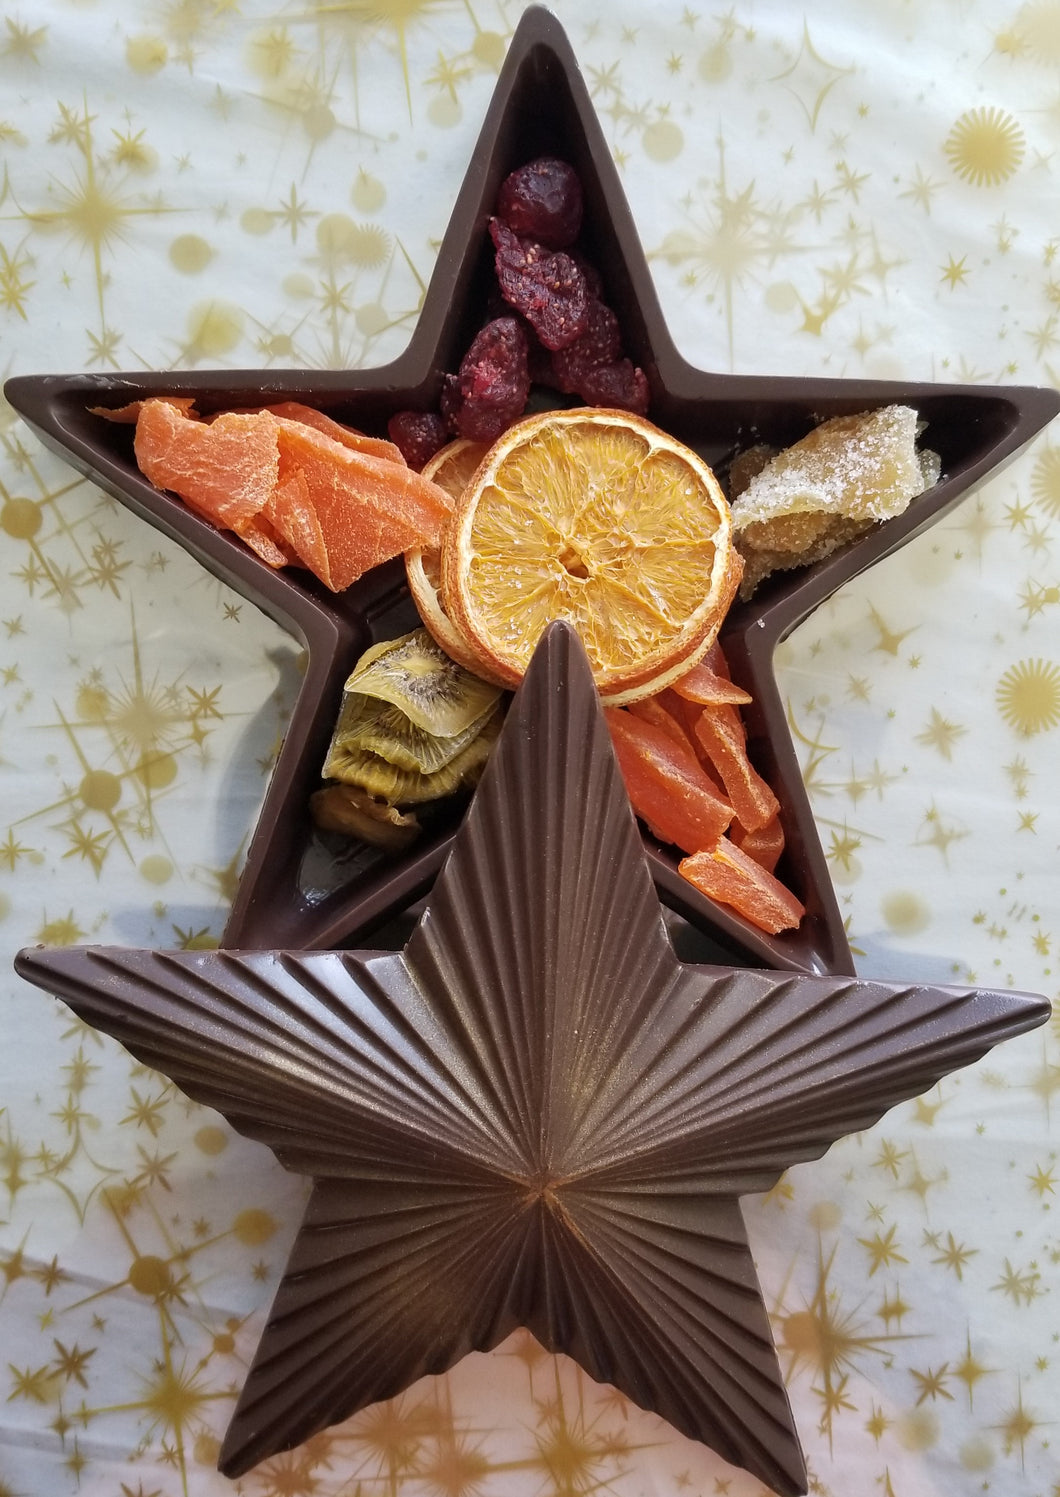 Christmas Star Shaped Chocolate Gift Box with Candied & Dried Fruits